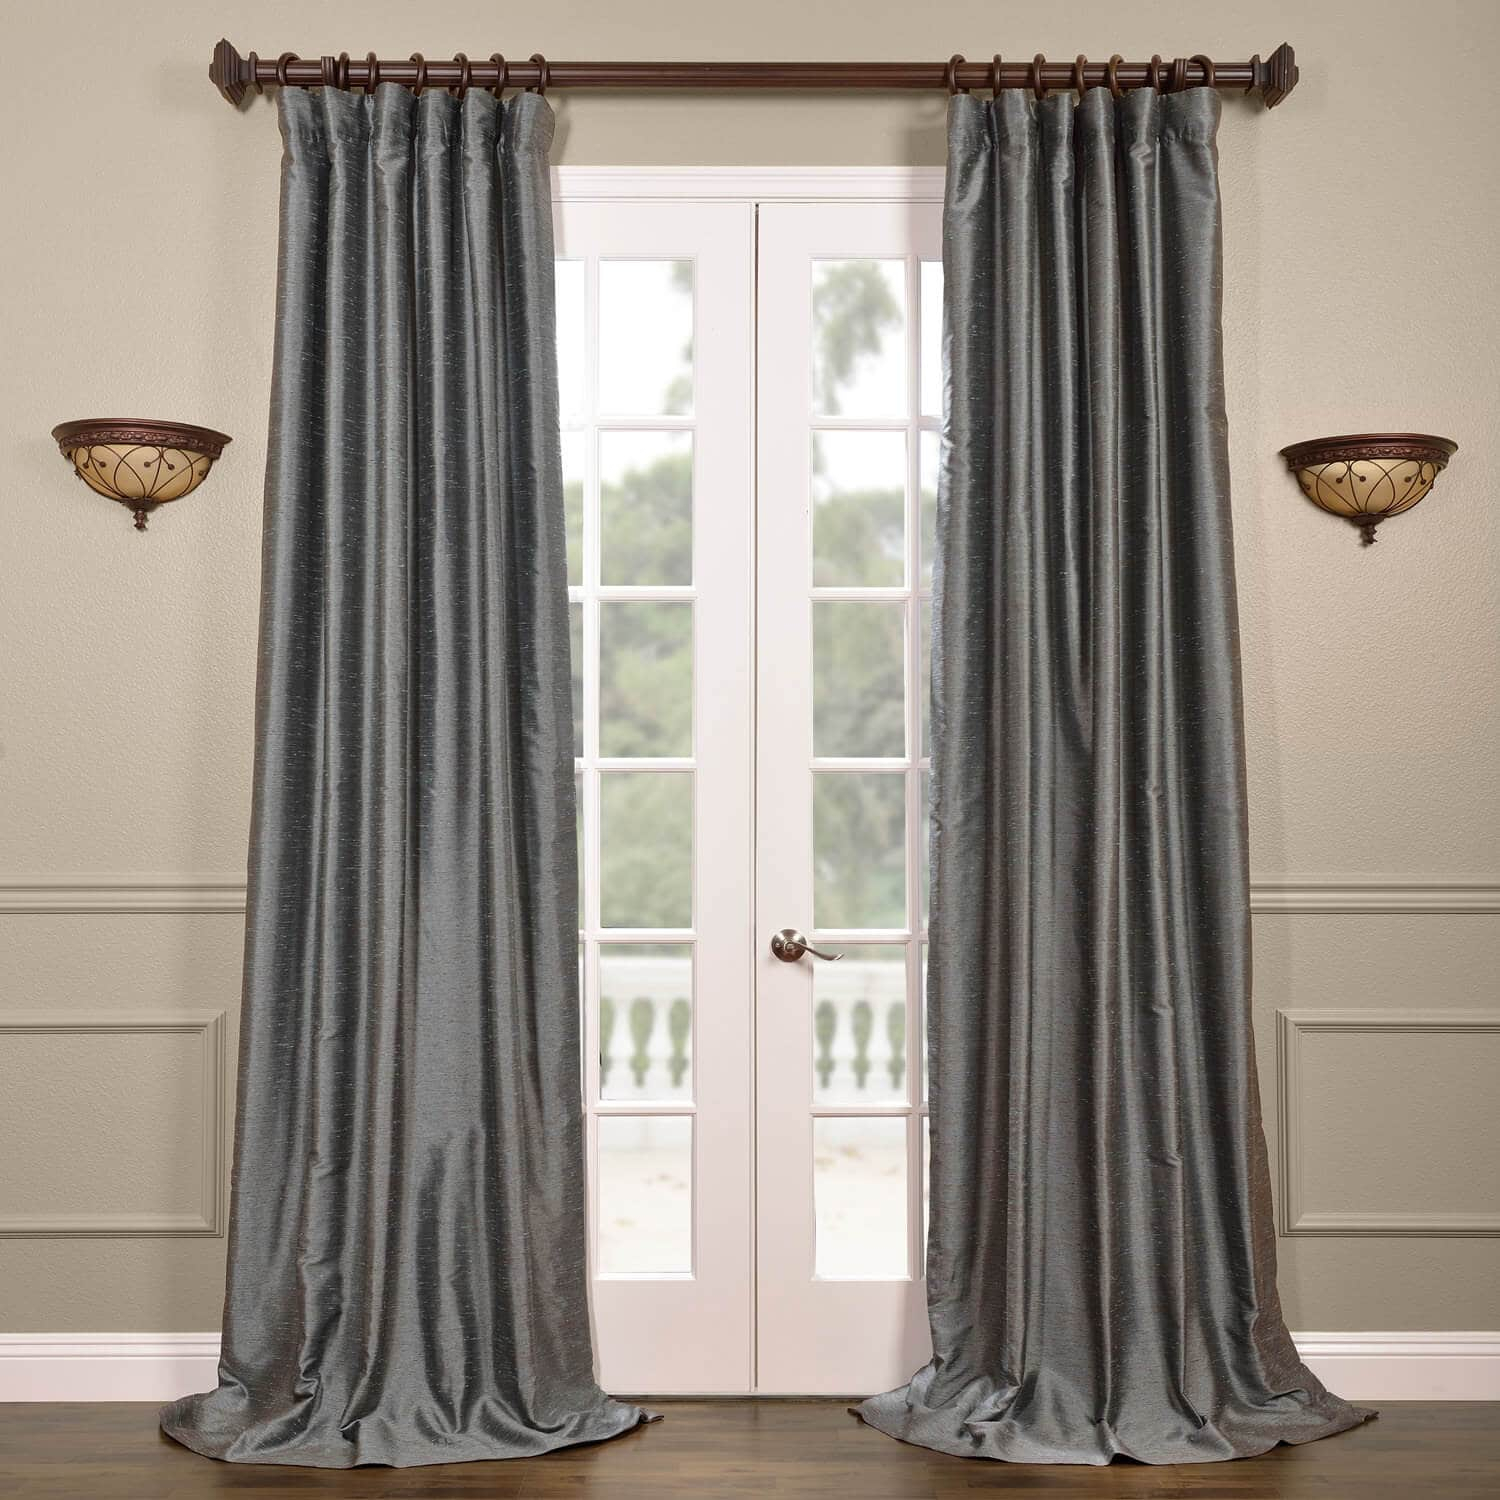 Pacific Storm Yarn Dyed Faux Dupioni Silk Curtain Regarding Storm Grey Vintage Faux Textured Dupioni Single Silk Curtain Panels (View 27 of 30)